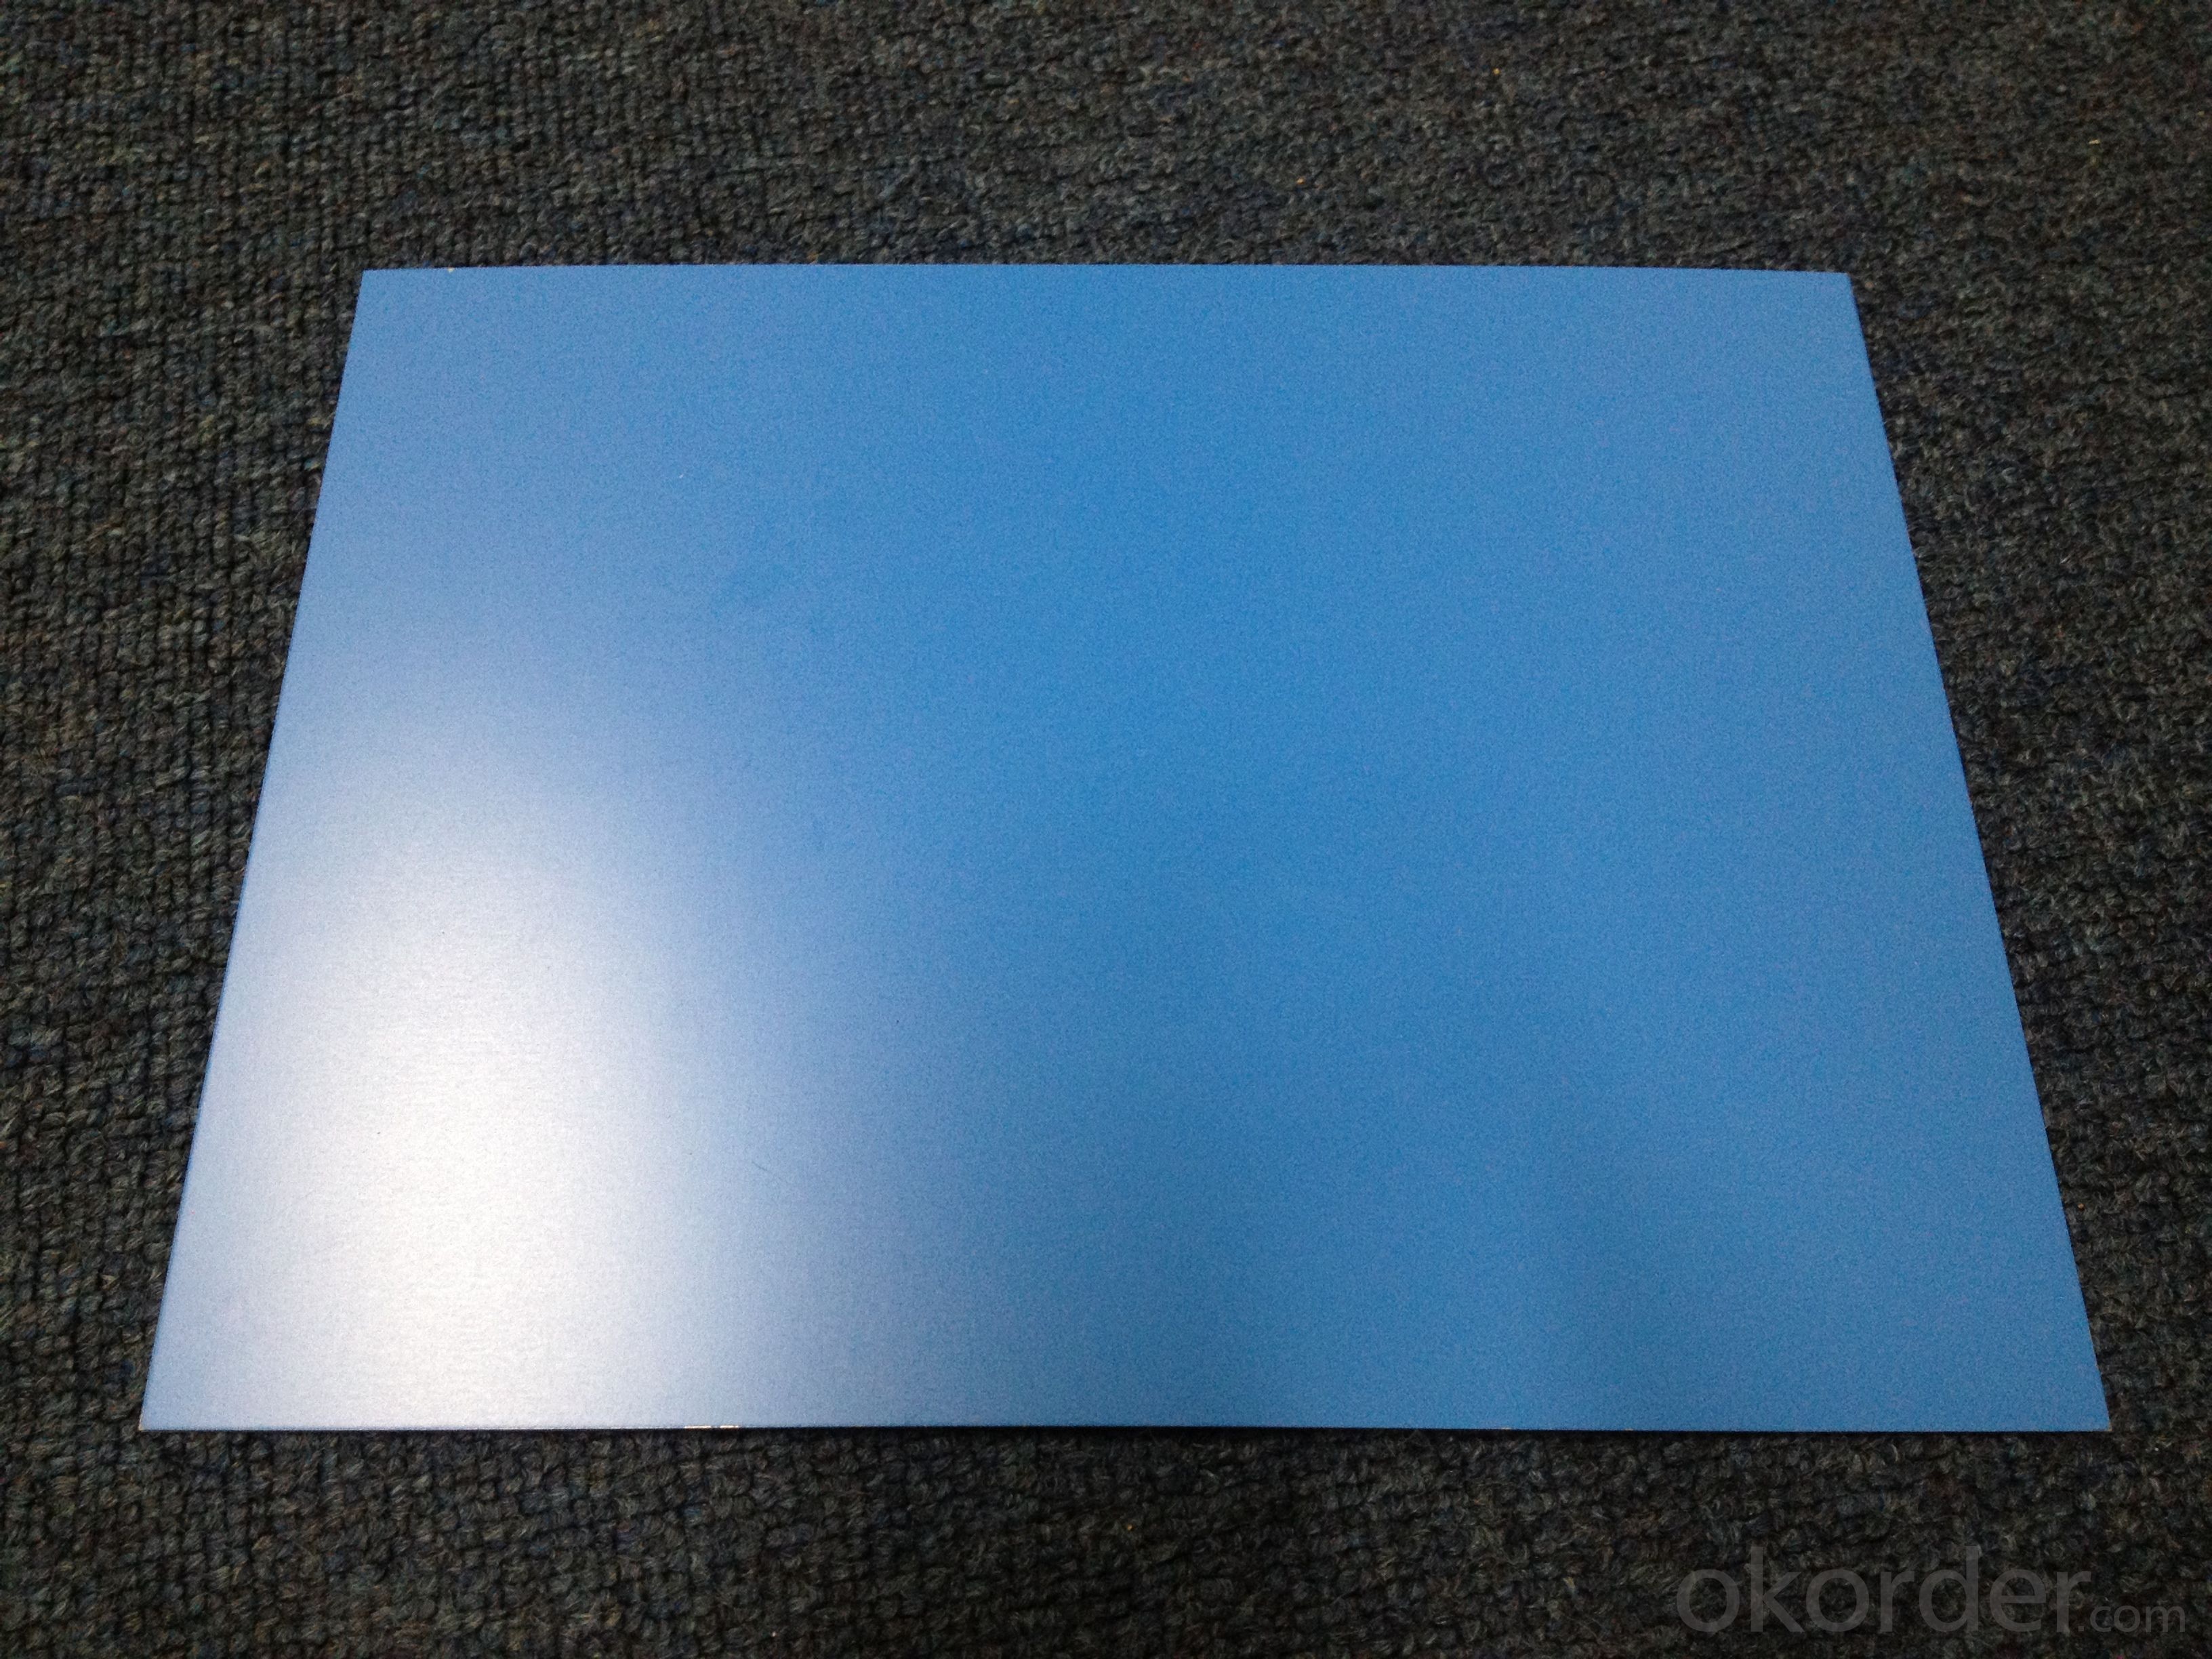 HS PRE-PAINTED GALVANIZED STEEL SHEET